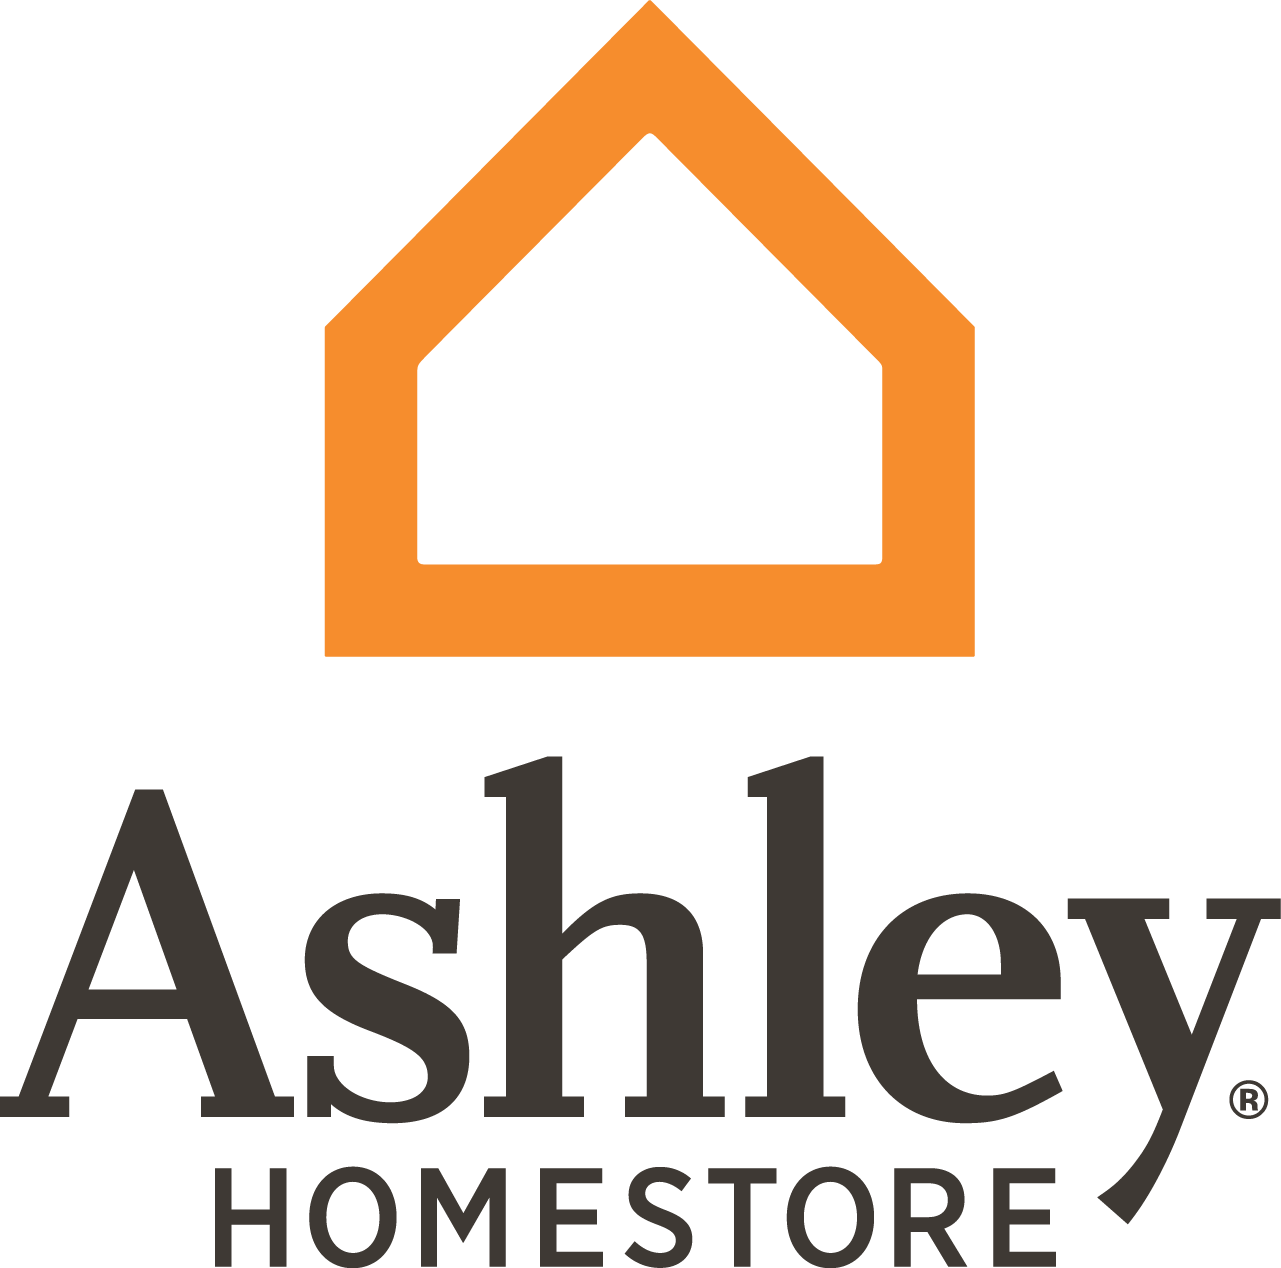 Ashley Furniture Homestore. ASHLEY FURNITURE HOMESTORE Jobs  Career   Employment Opportunities